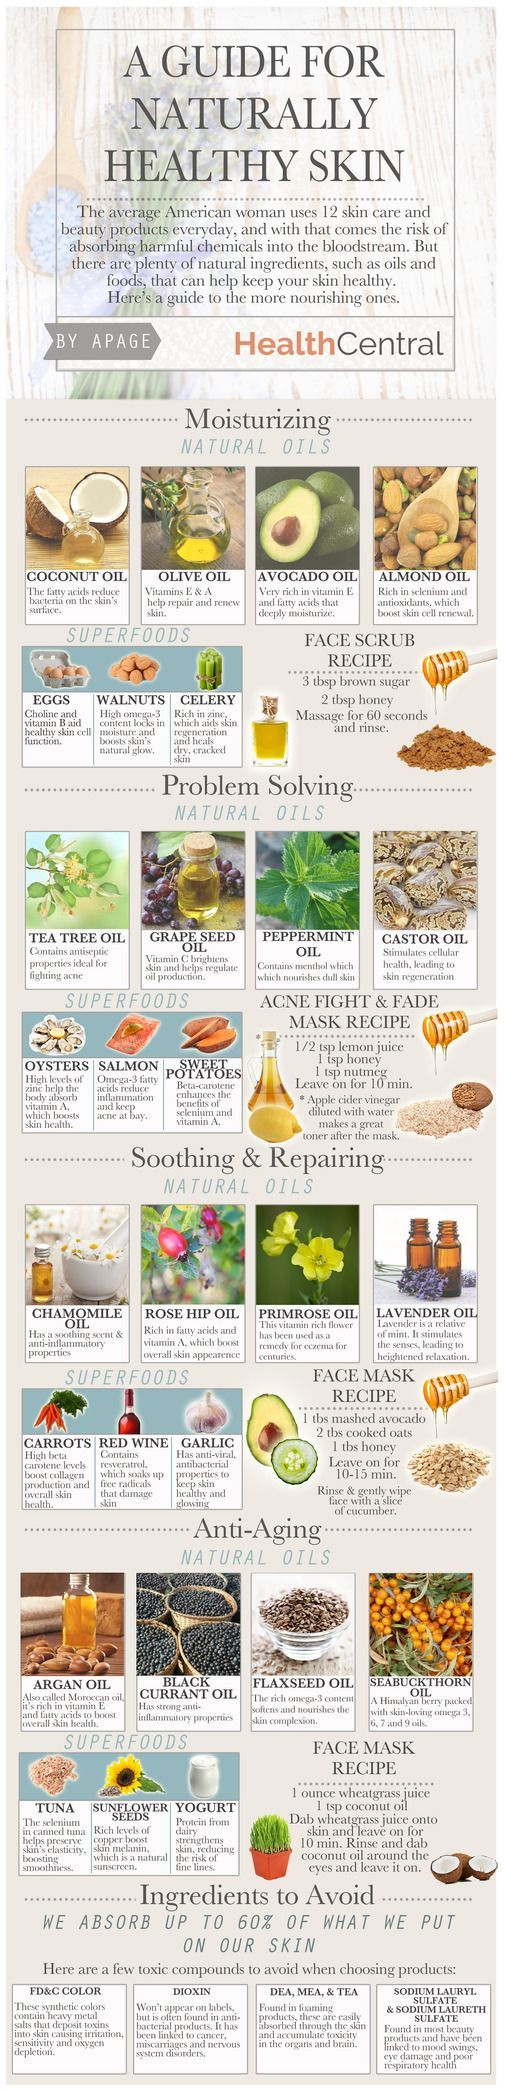 A guide for naturally healthy and beautiful #skin: Learn how to keep your skin healthy and nice in this #infographic: www.healthcentral...